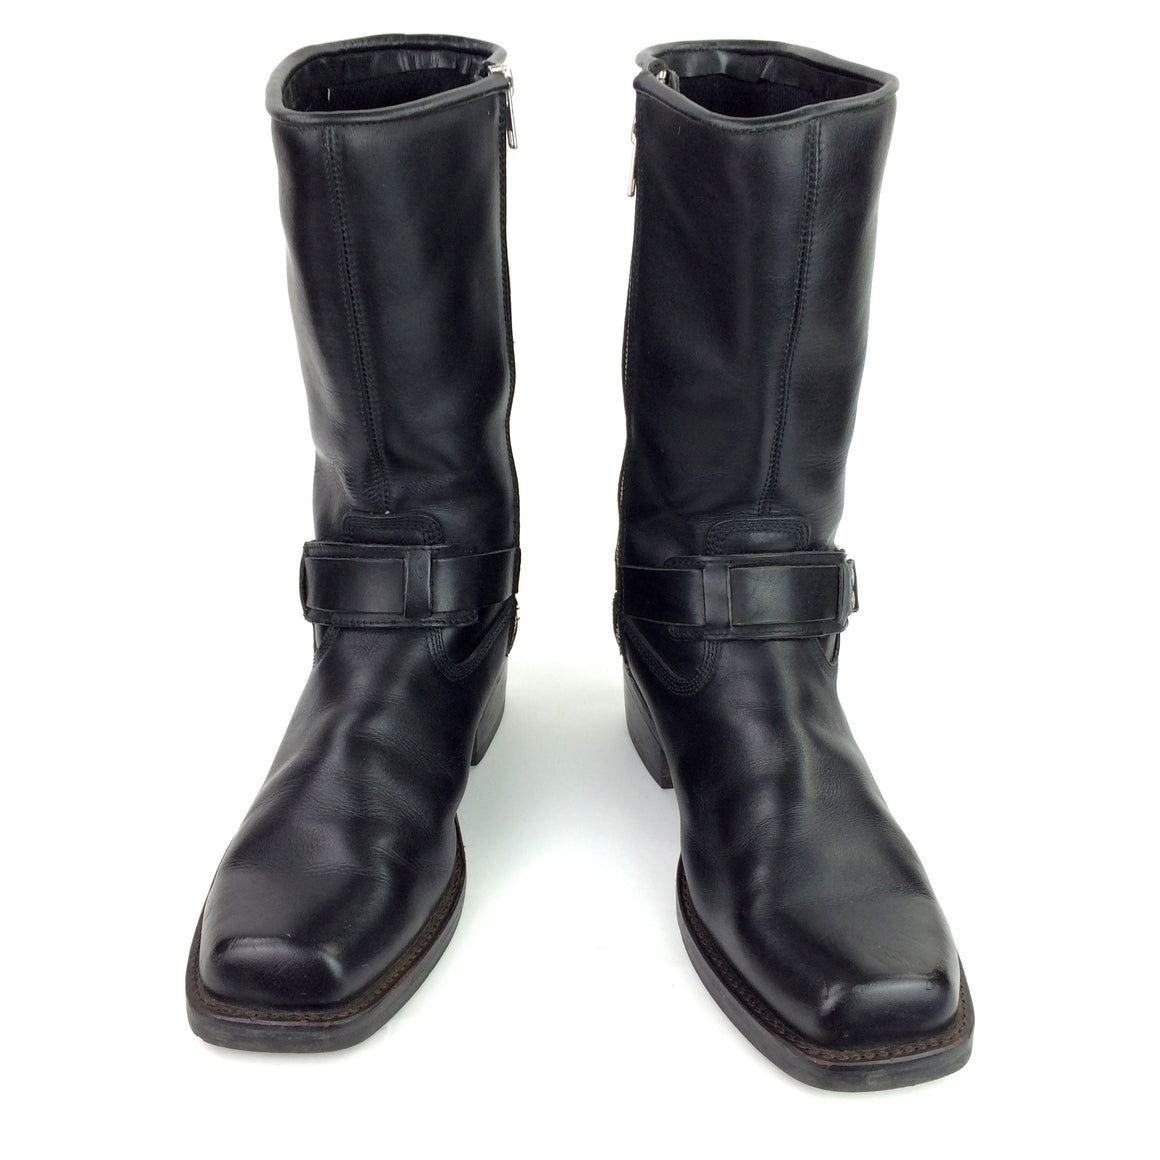 Vintage Durango Square Toe Ring Harness Biker Boots, side view